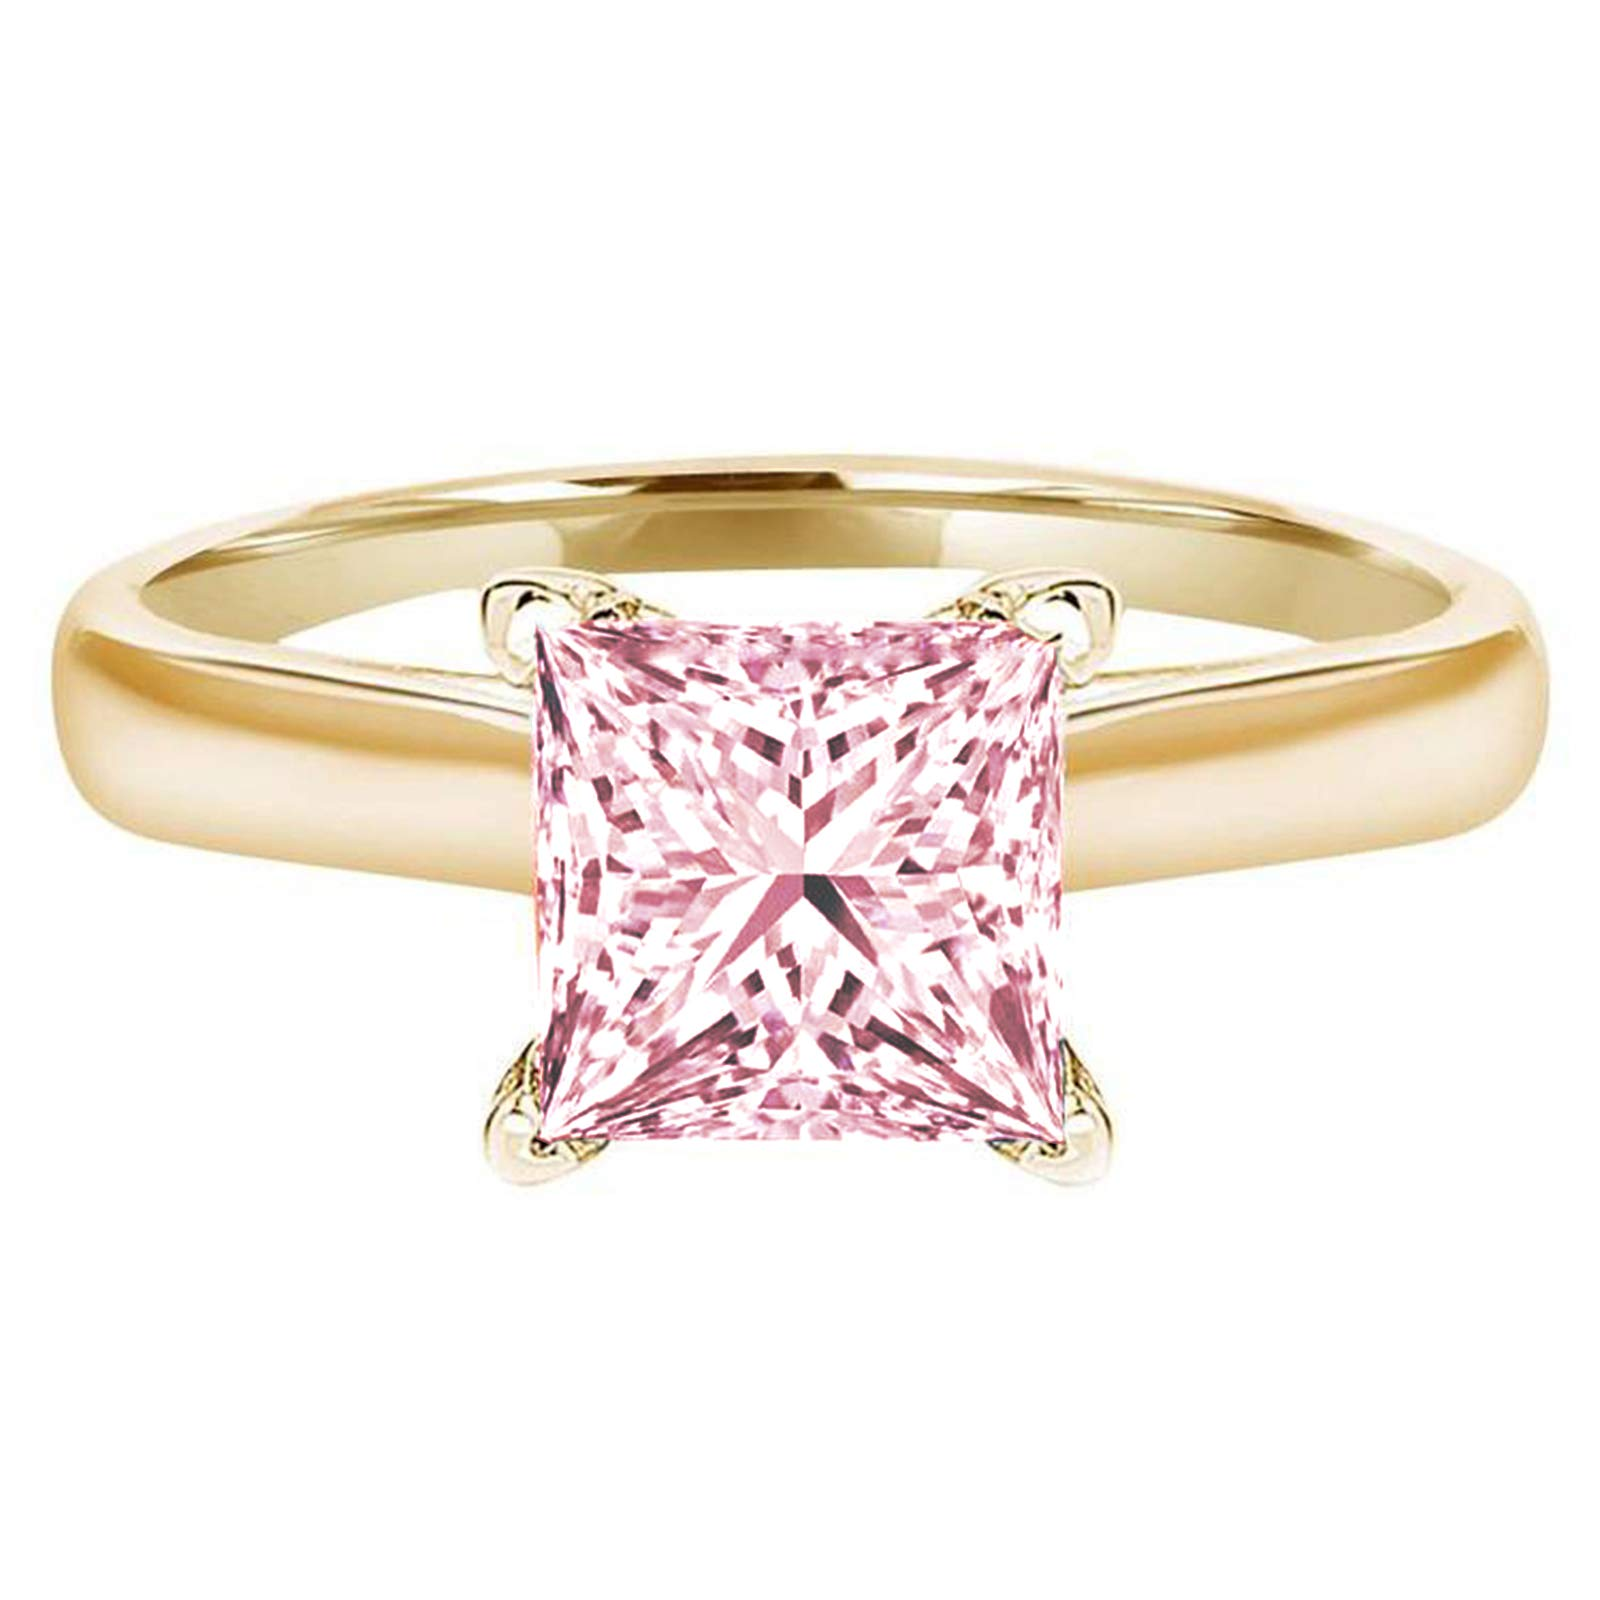 1.0 ct Brilliant Princess Cut Solitaire Pink Simulated Diamond CZ Ideal VVS1 D 4-Prong Engagement Wedding Bridal Promise Anniversary Ring Solid Real 14k Yellow Gold for Women